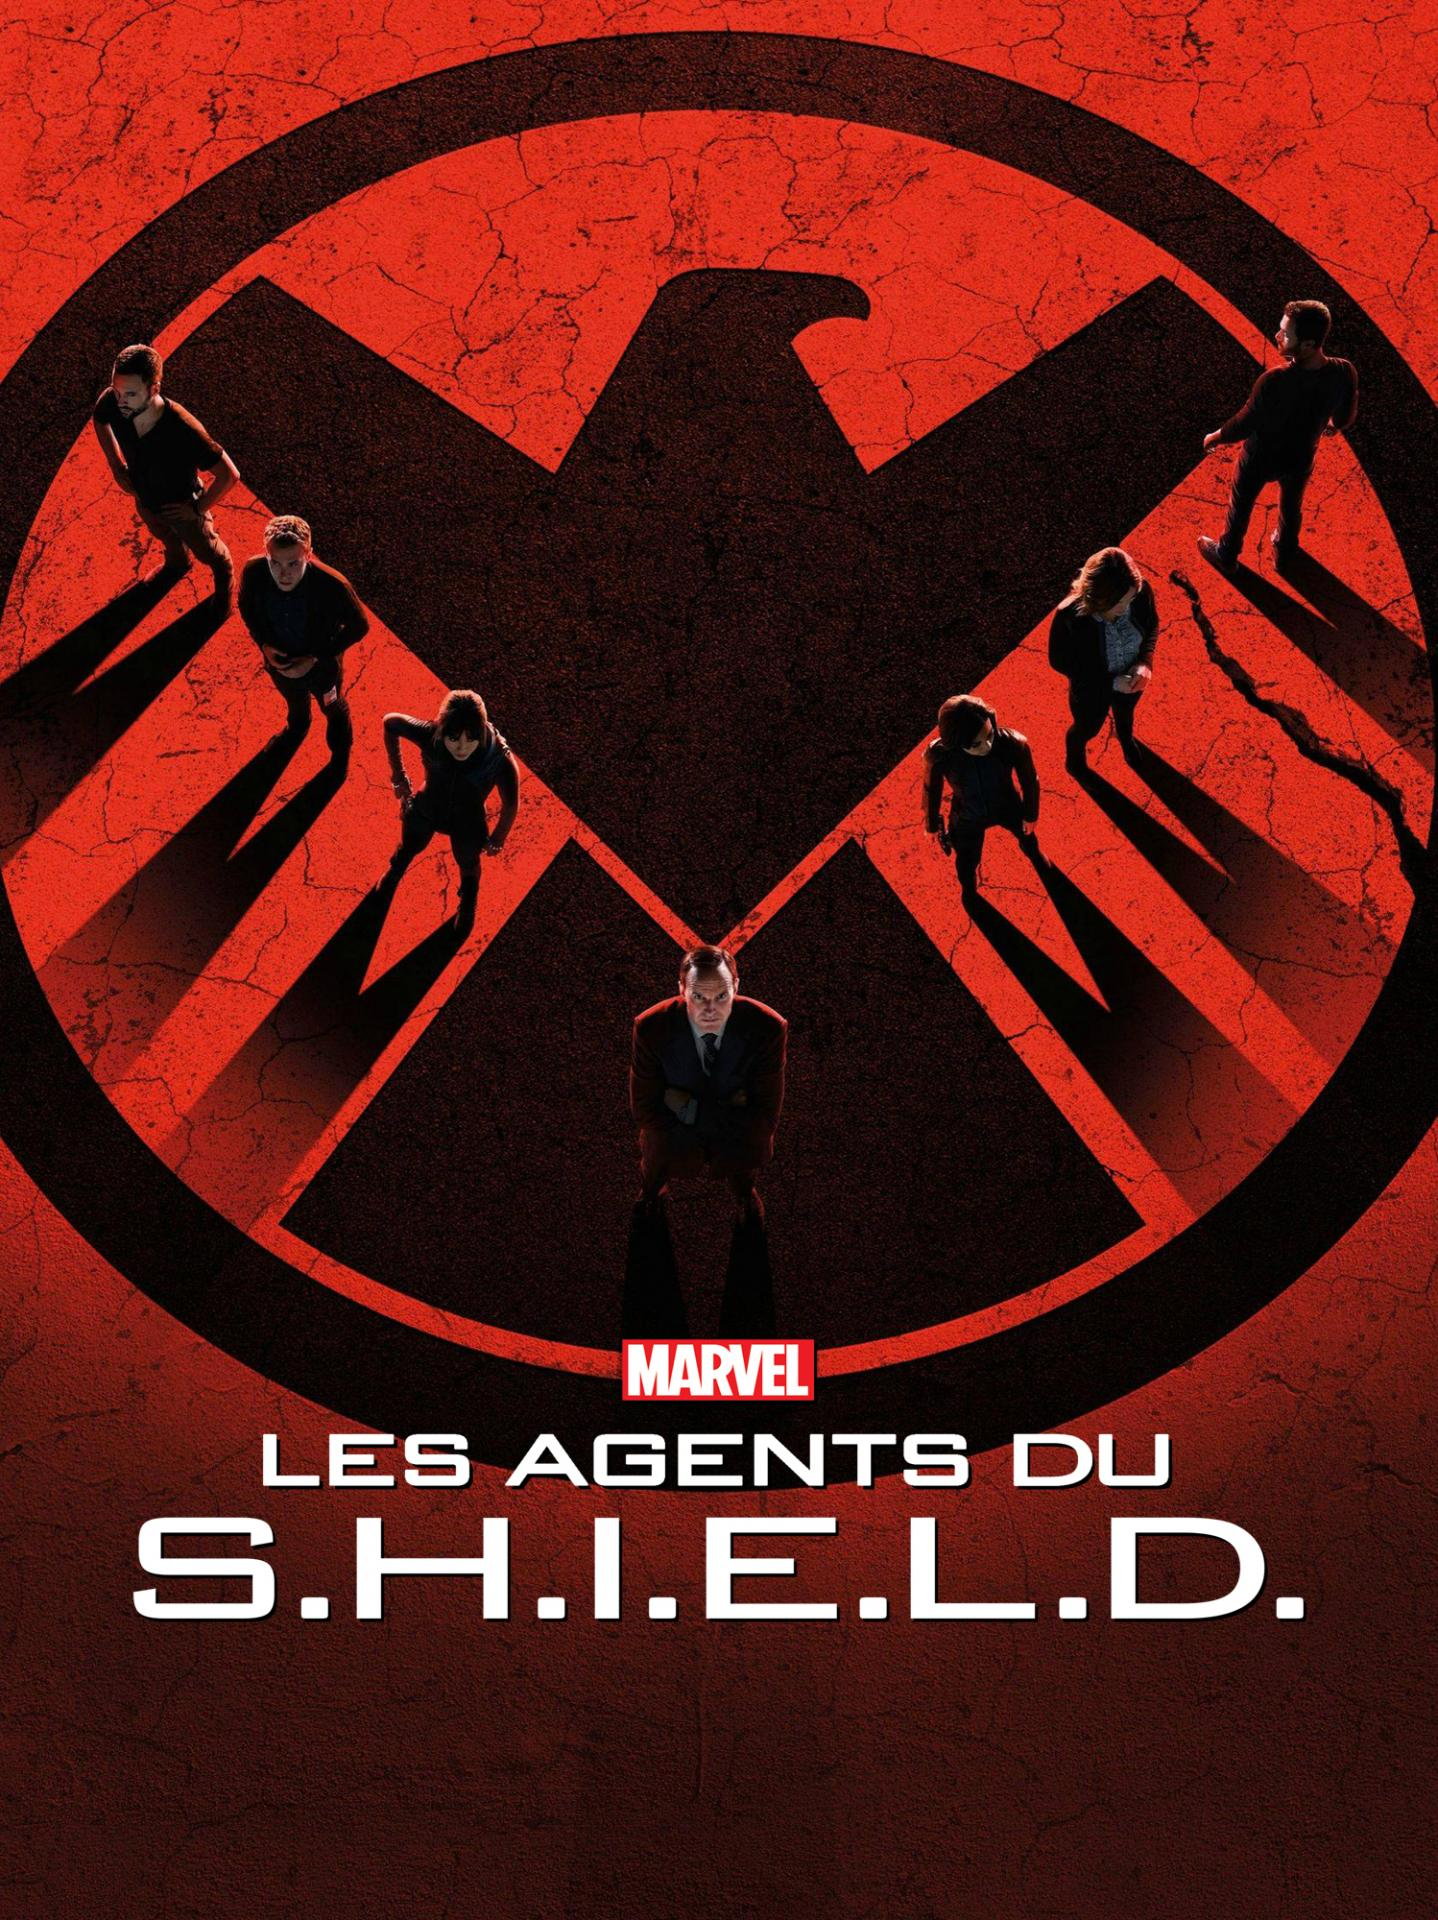 Agentsofshield s2 poster